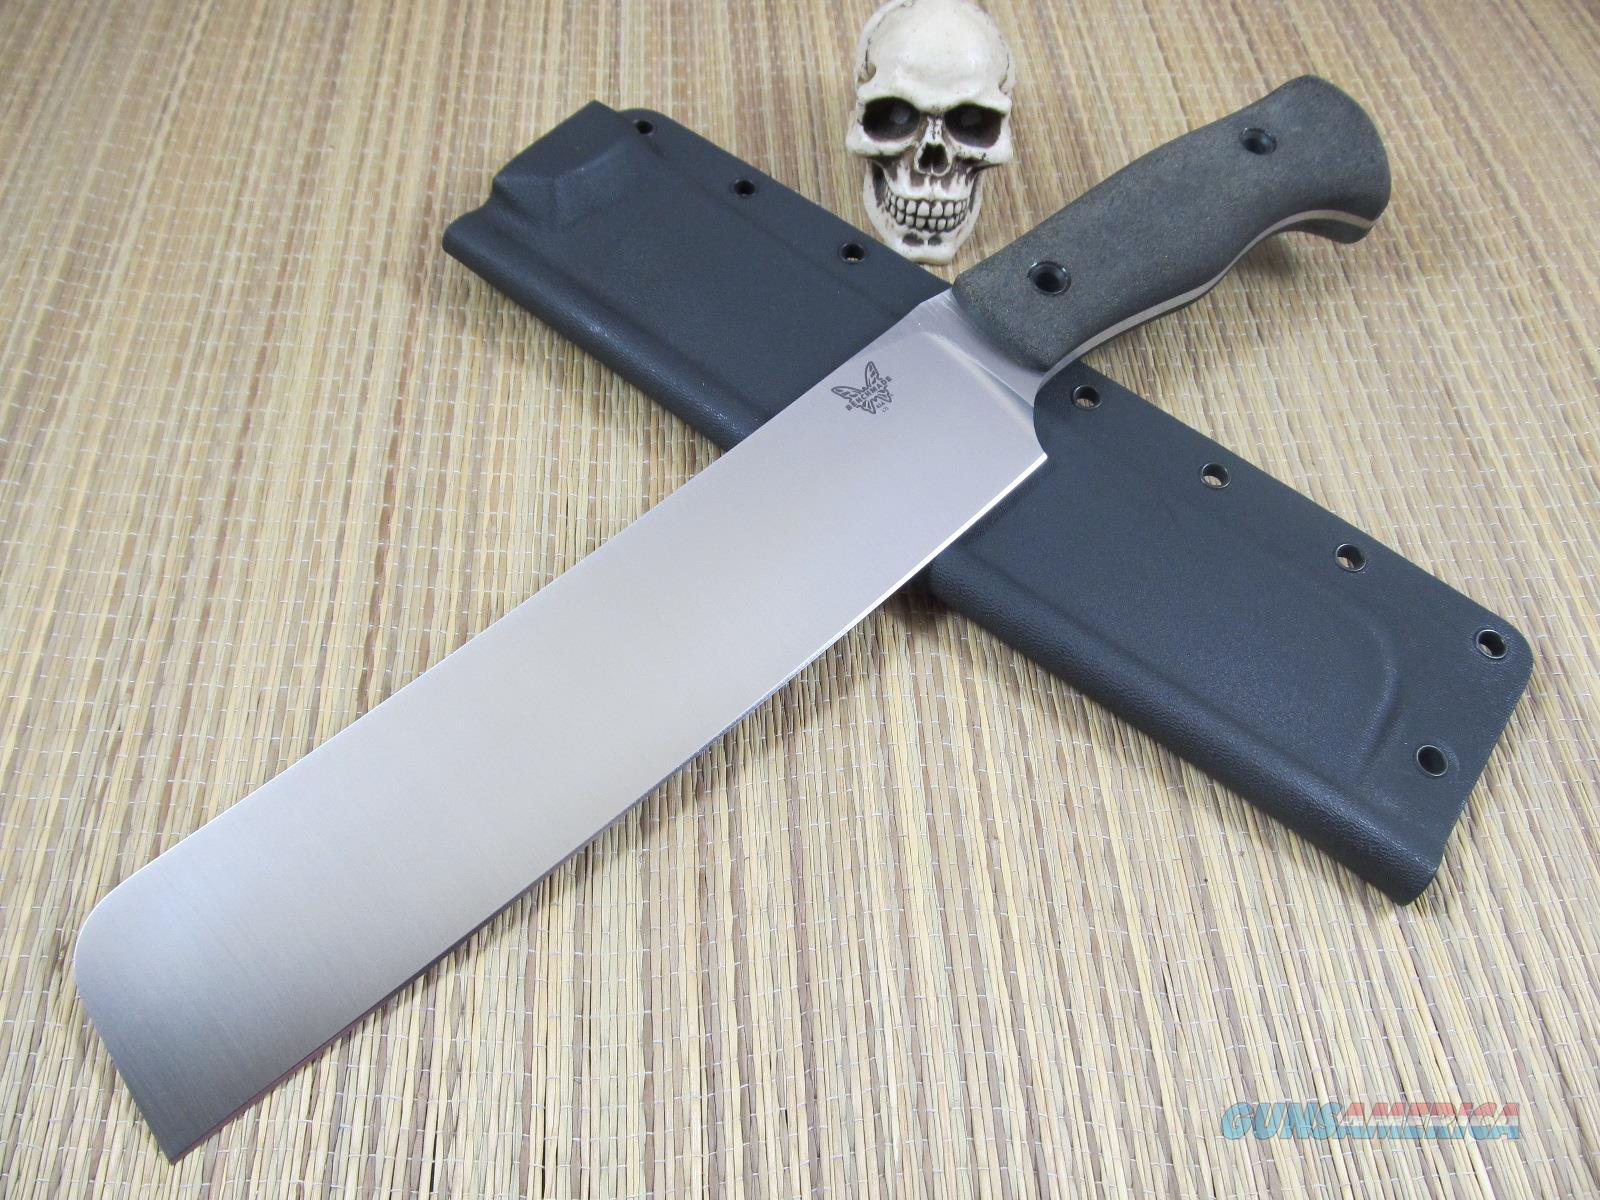 Benchmade 1for sale